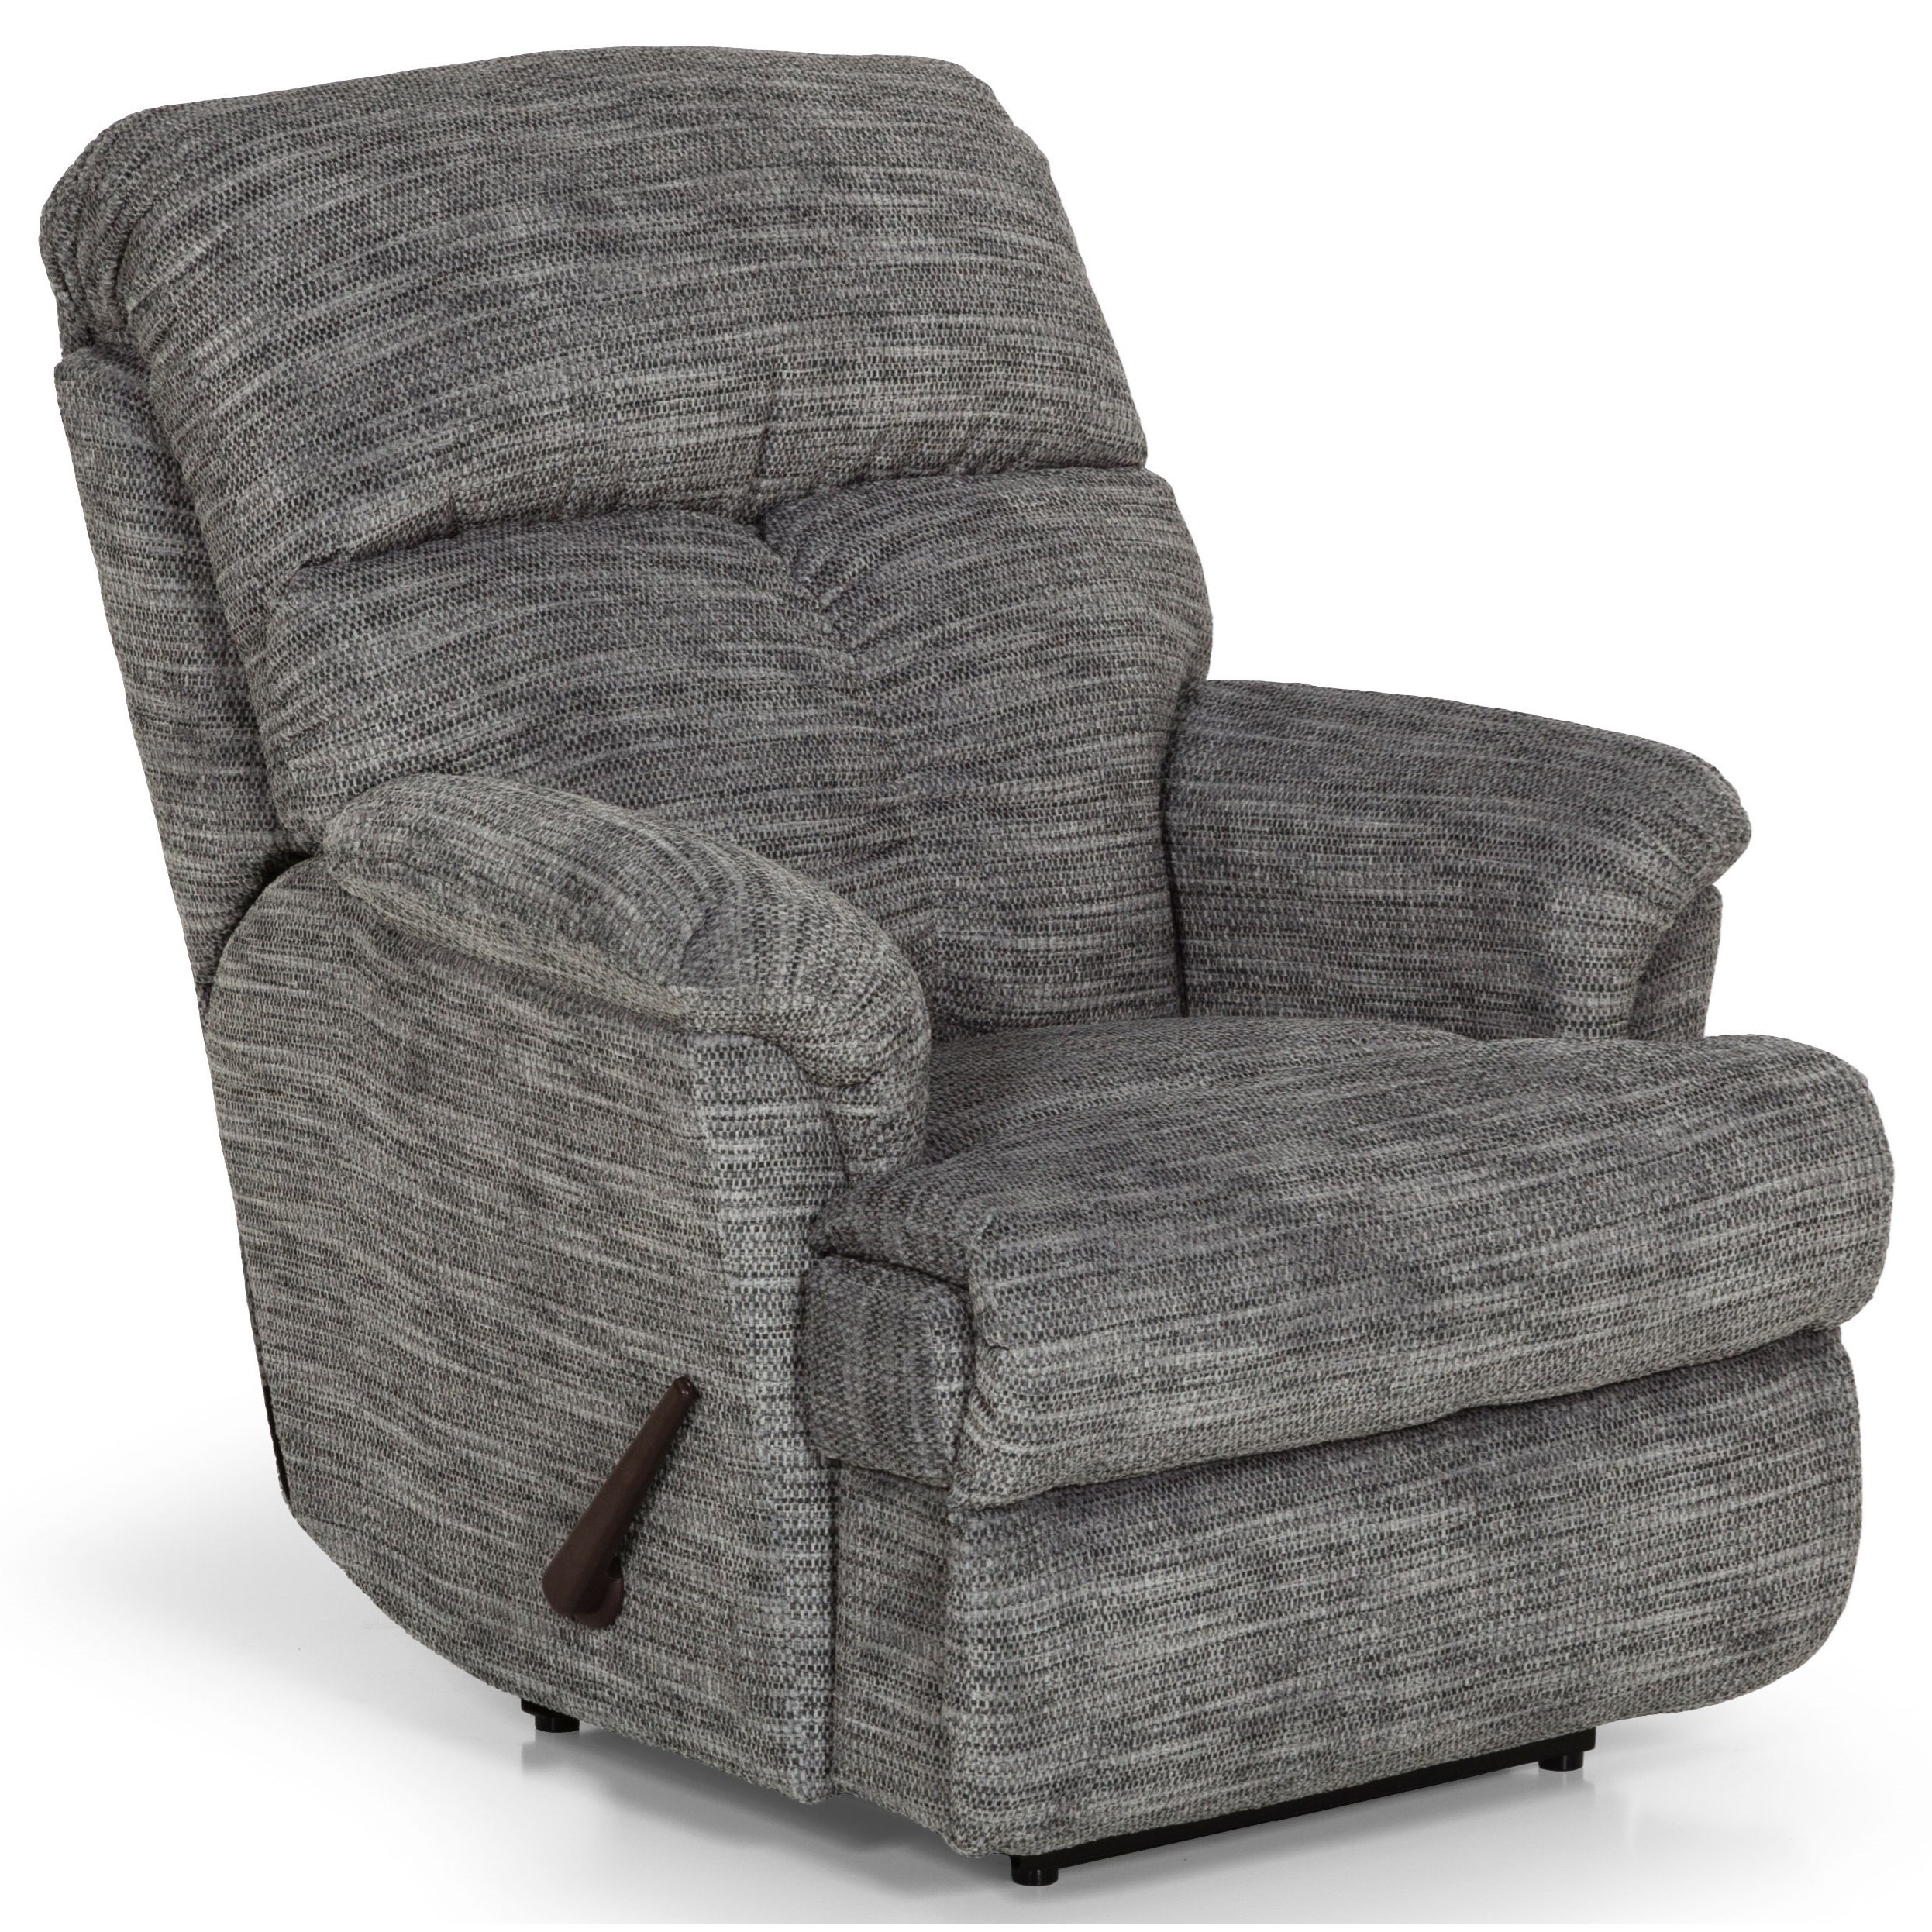 812 Power Reclining Chair by Stanton at Wilson's Furniture